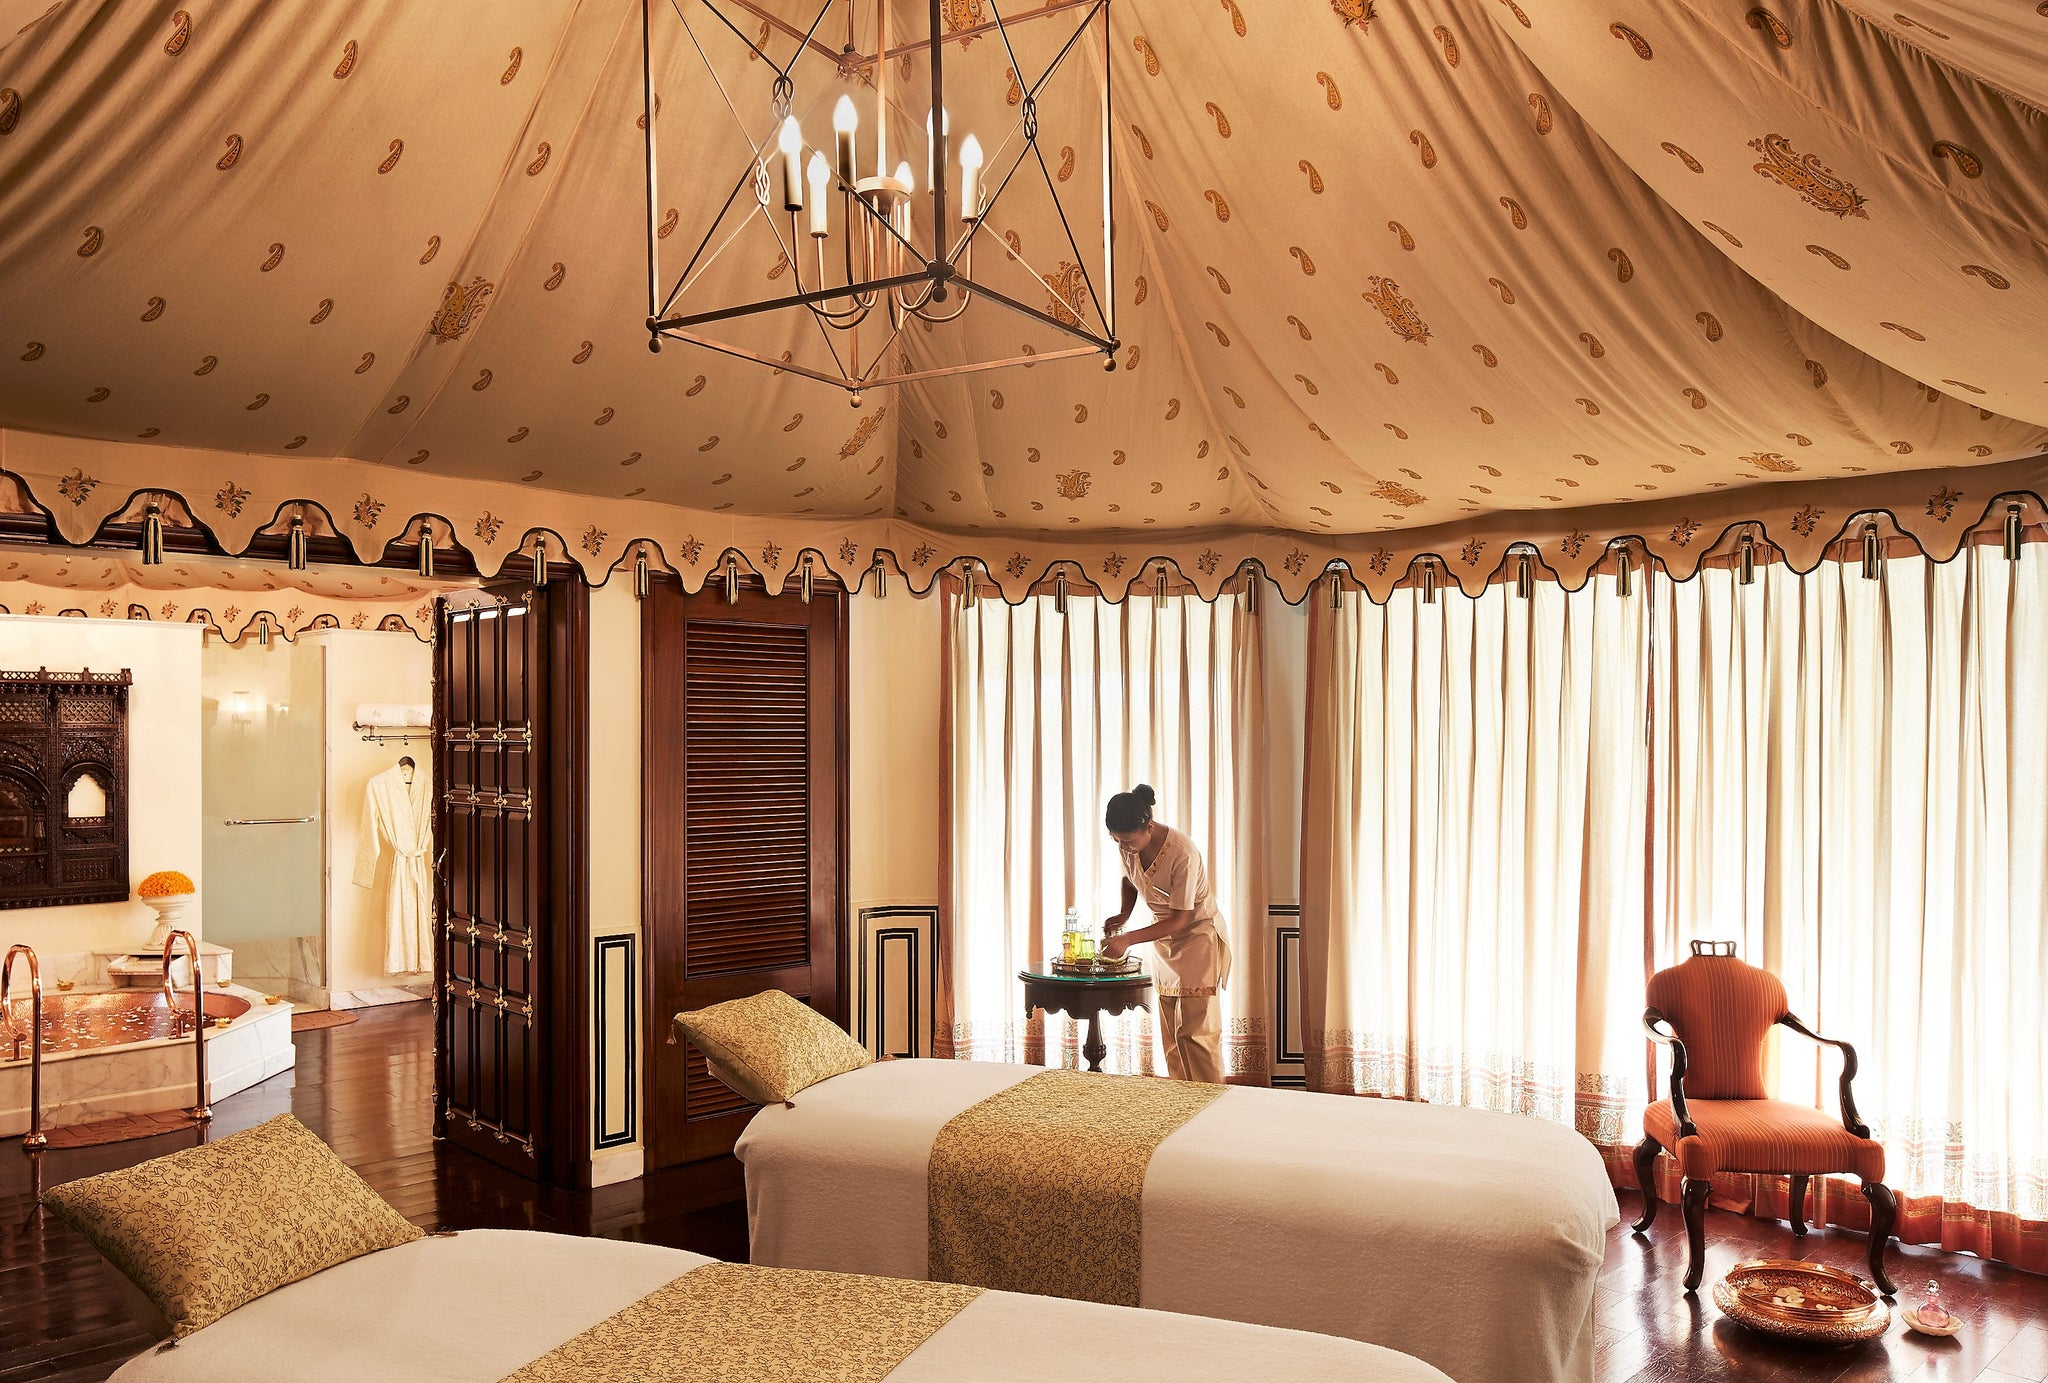 Malavara Top Luxury Ayurveda Retreats - Rambagh Palace Jiva Spa